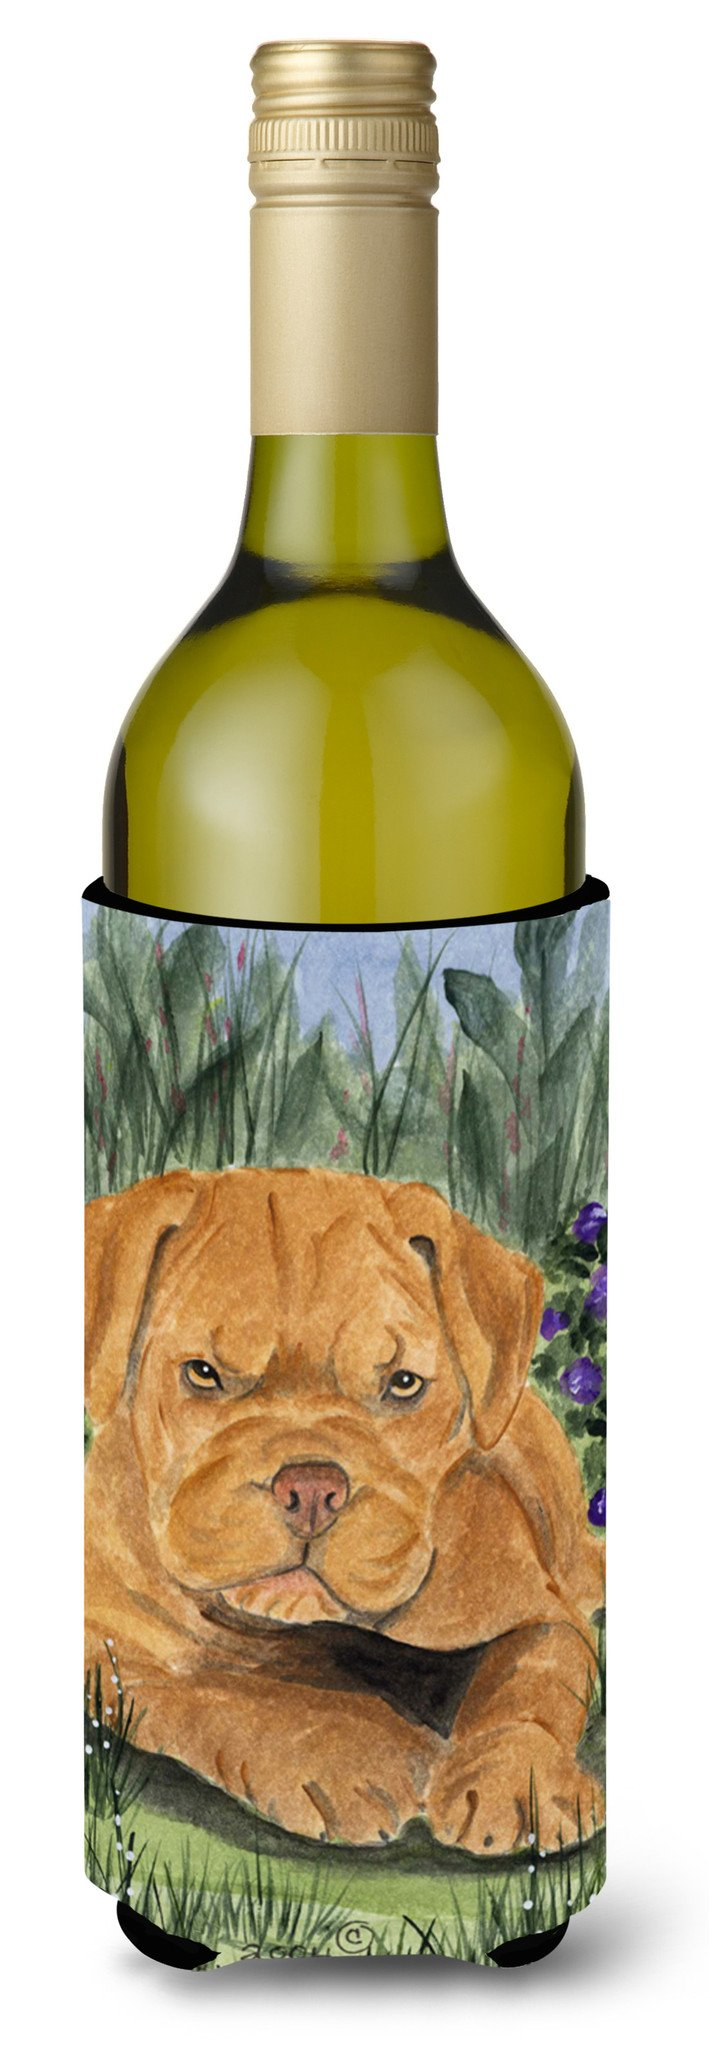 Dogue de Bordeaux Wine Bottle Beverage Insulator Beverage Insulator Hugger SS8032LITERK by Caroline's Treasures